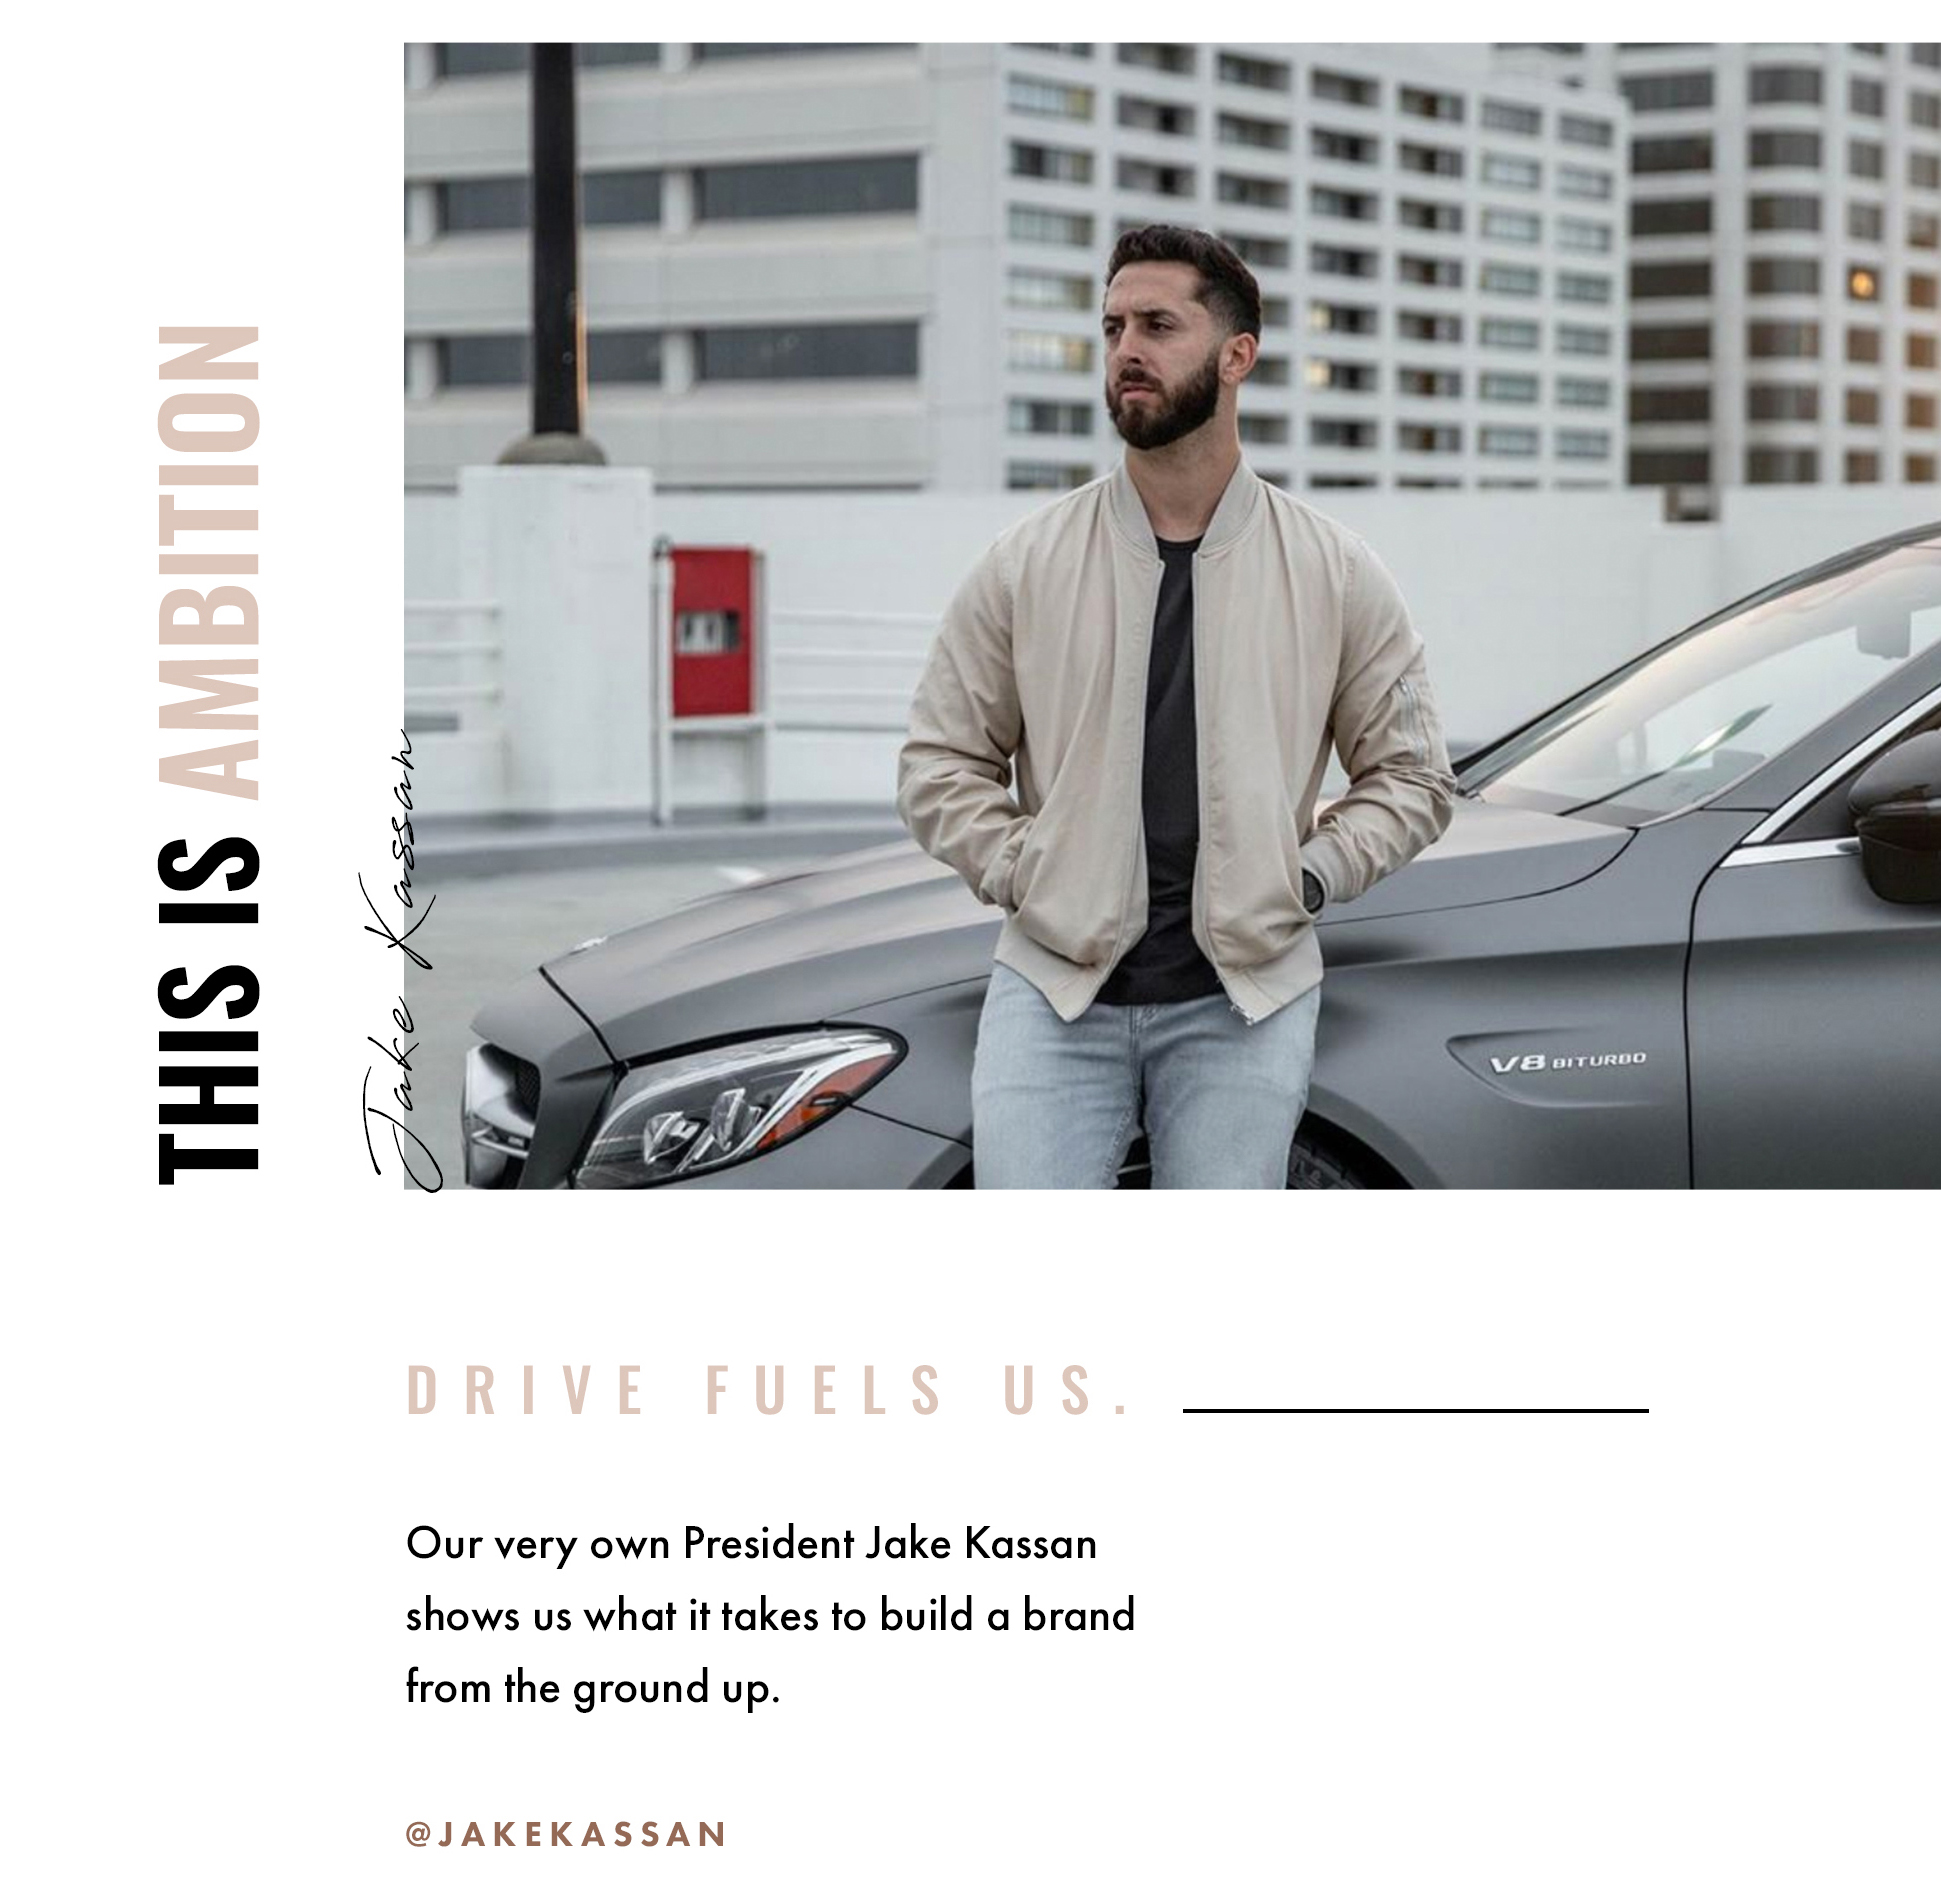 This is ambition. Jake Kassan. Drive fuels us. Our very own President Jake Kassan shows us what it takes to build a brand from the ground up. @jakekassan